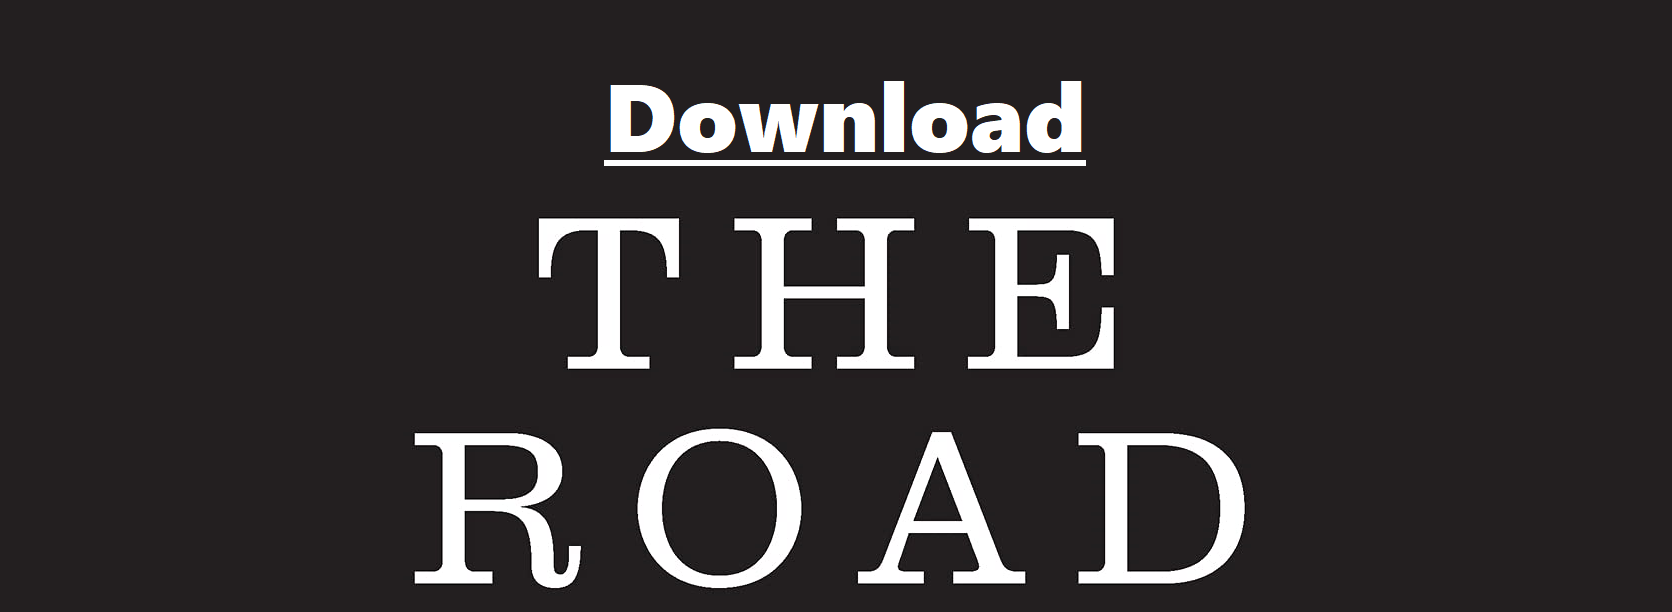 Download The Road By Cormac McCarthy Pdf